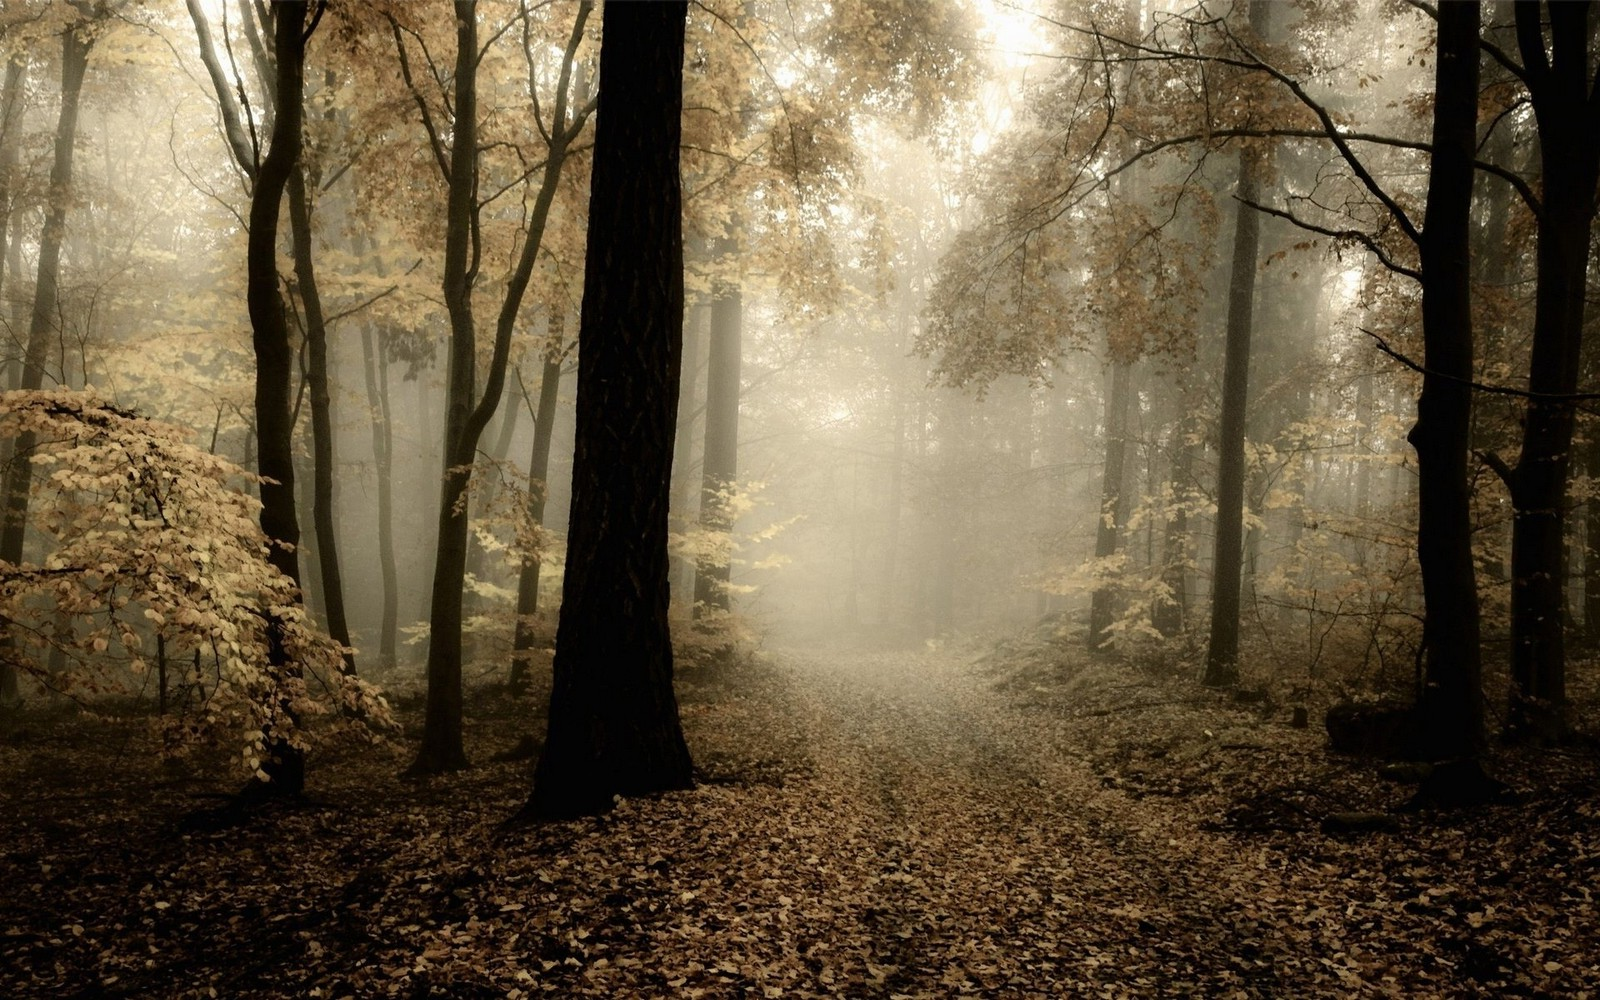 Fall Desktop Wallpaper Full Screen Nature Landscape Forest Mist Path Leaves Fall